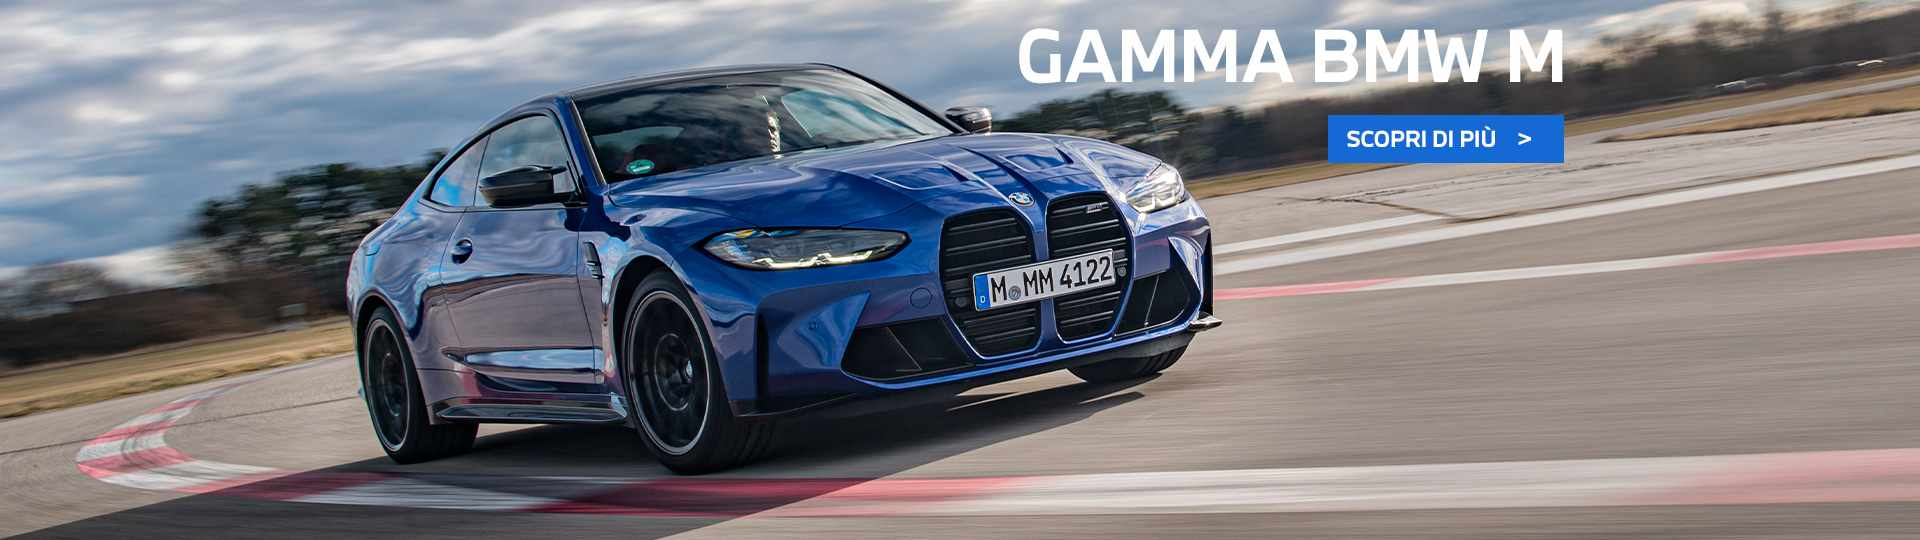 header_bmw_gamma_m.jpg